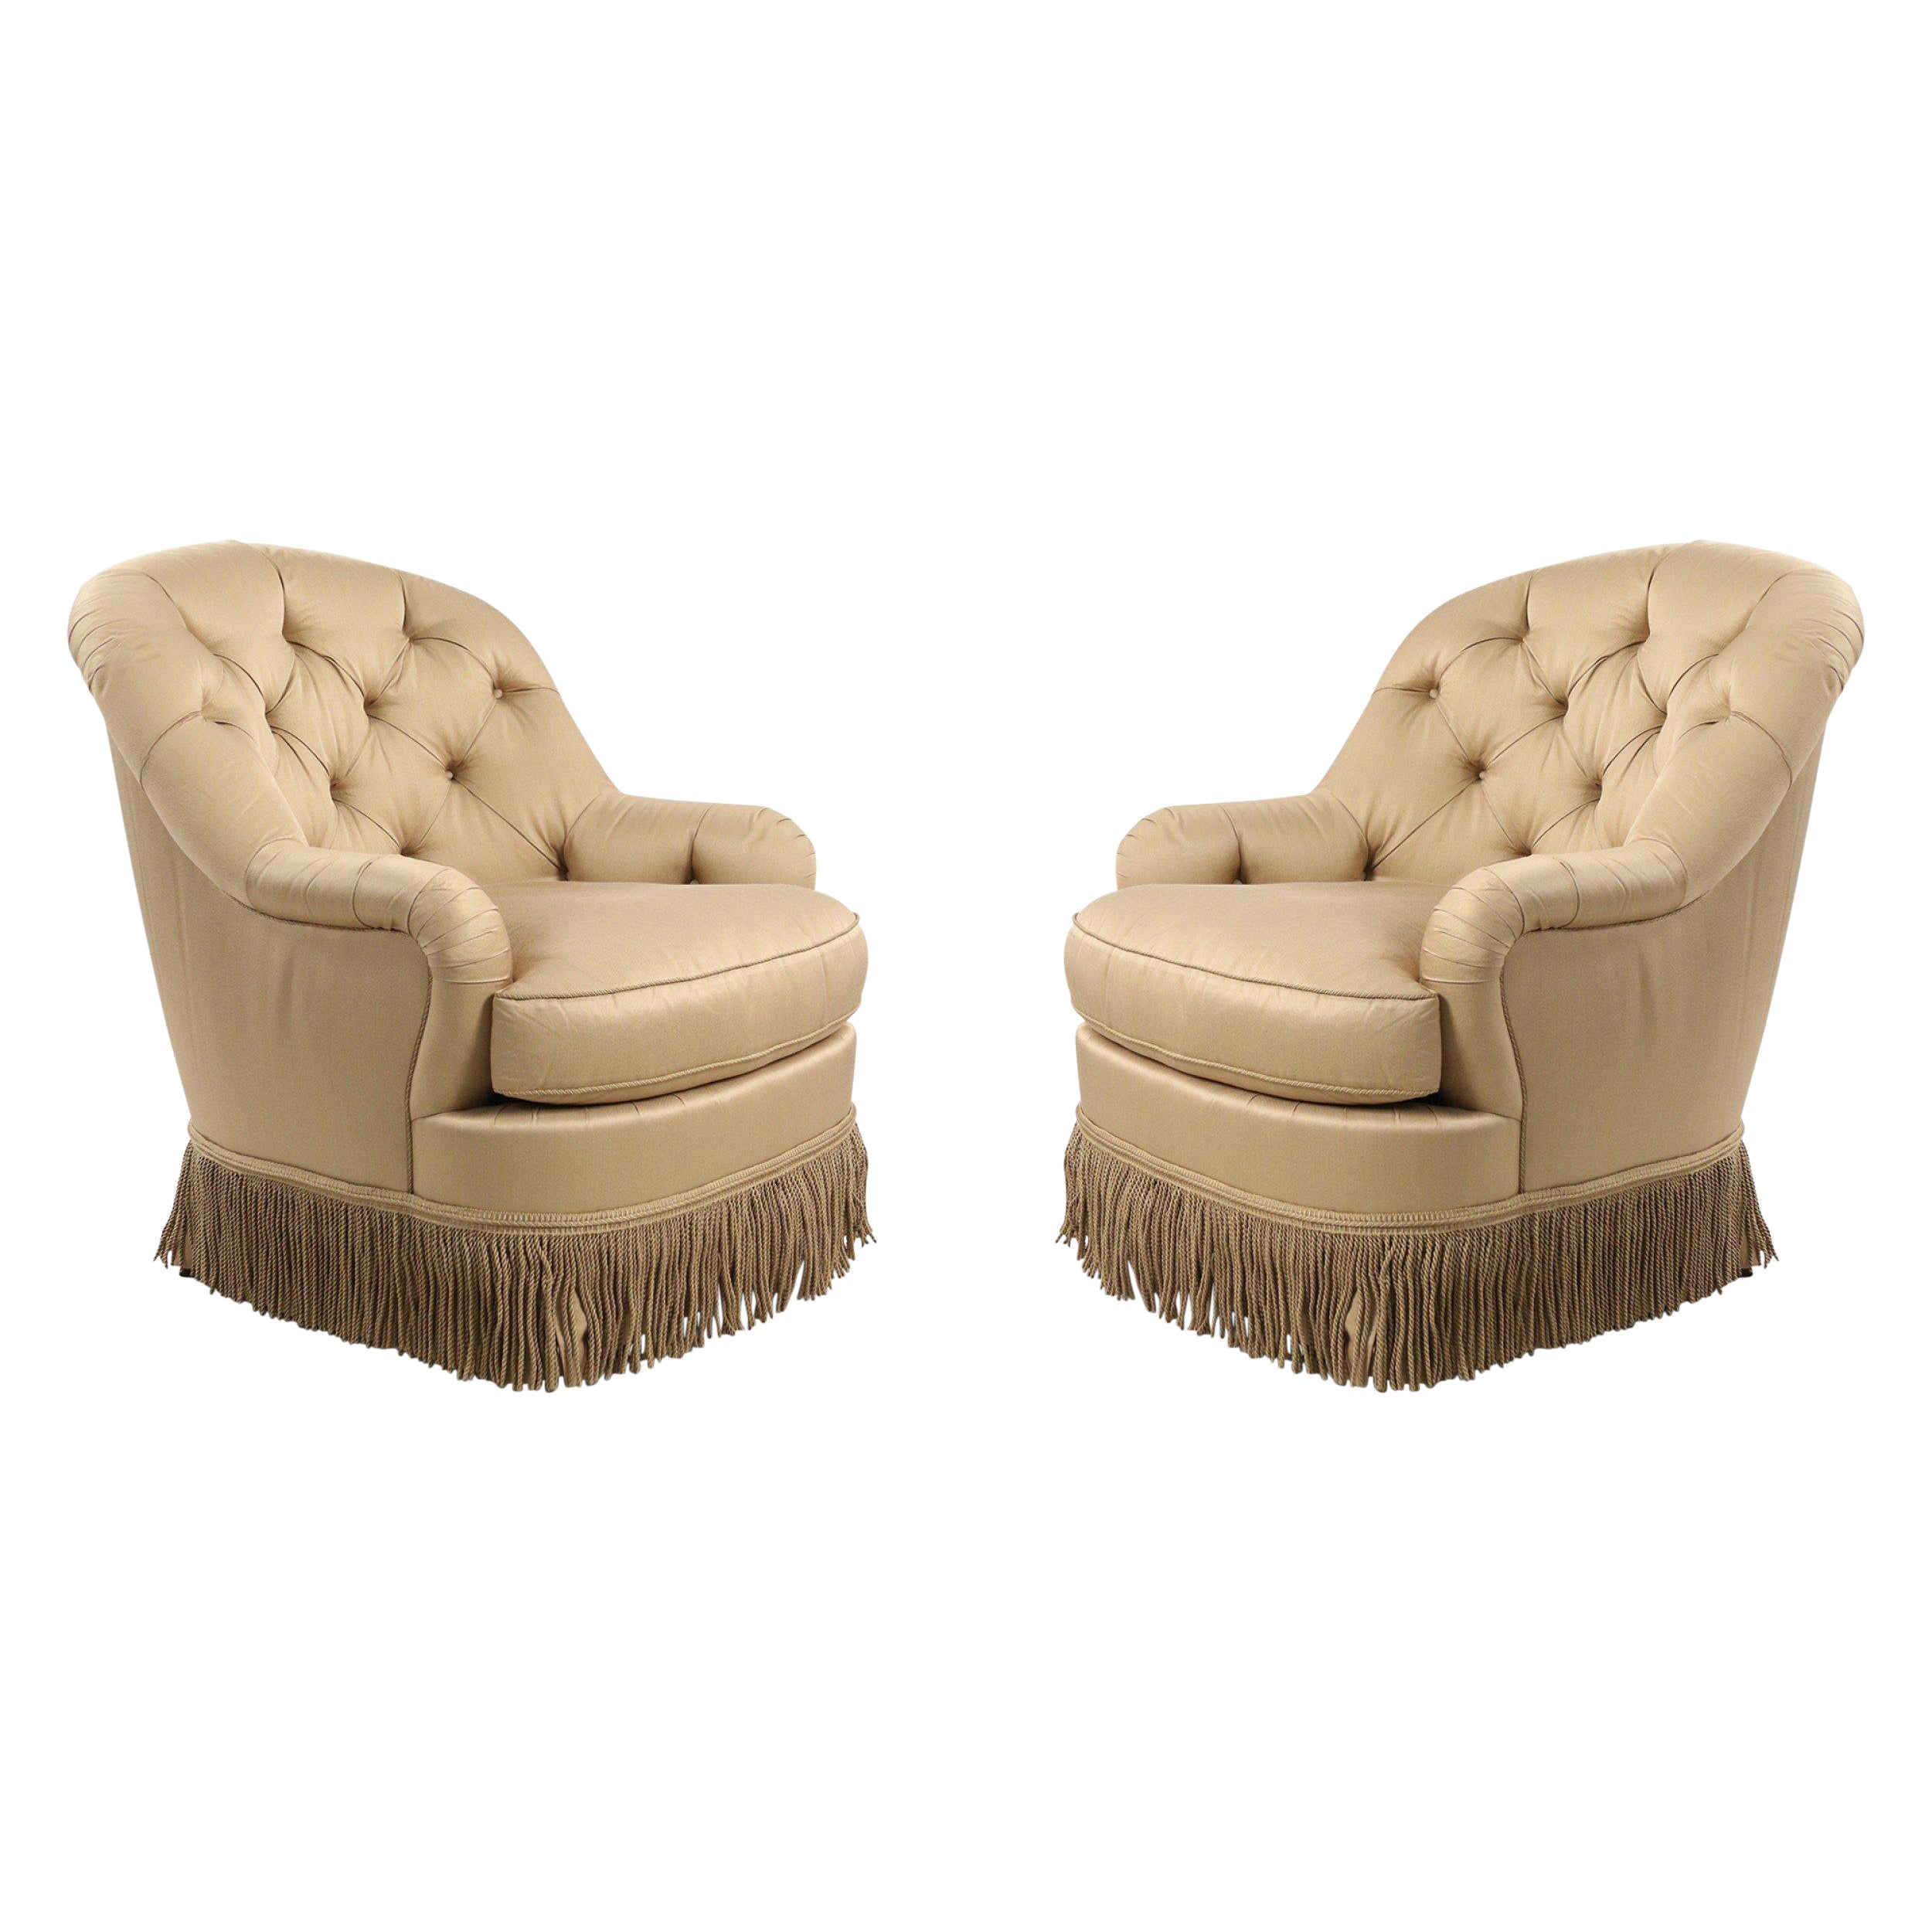 Pair of English Victorian Style Beige Tufted Fringed Tub Armchairs